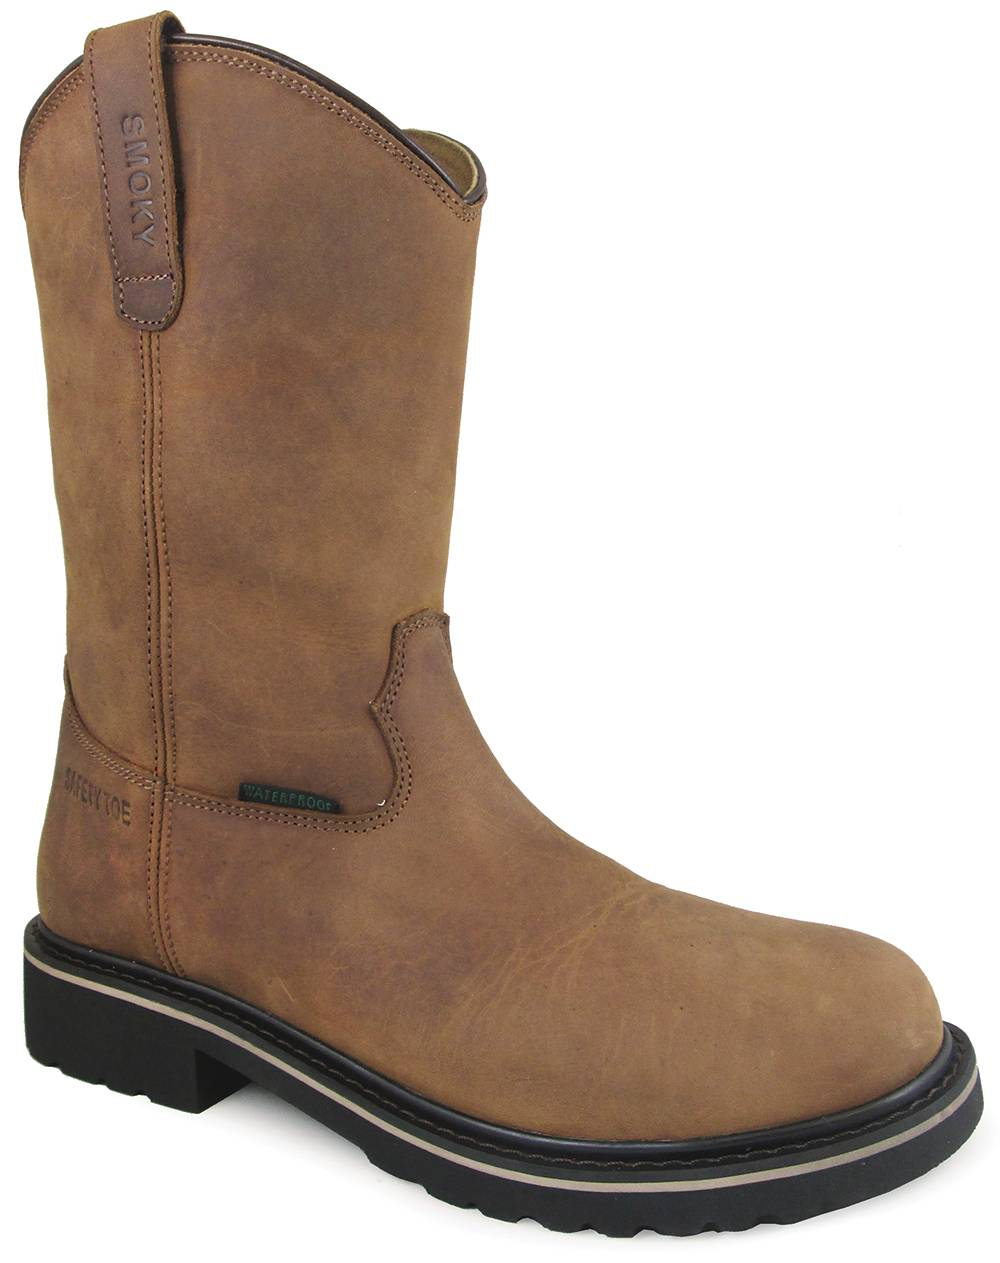 Smoky Mountain Scottsdale 10-inch Waterproof Safety Toe Wellington Boots - Mens - Brown